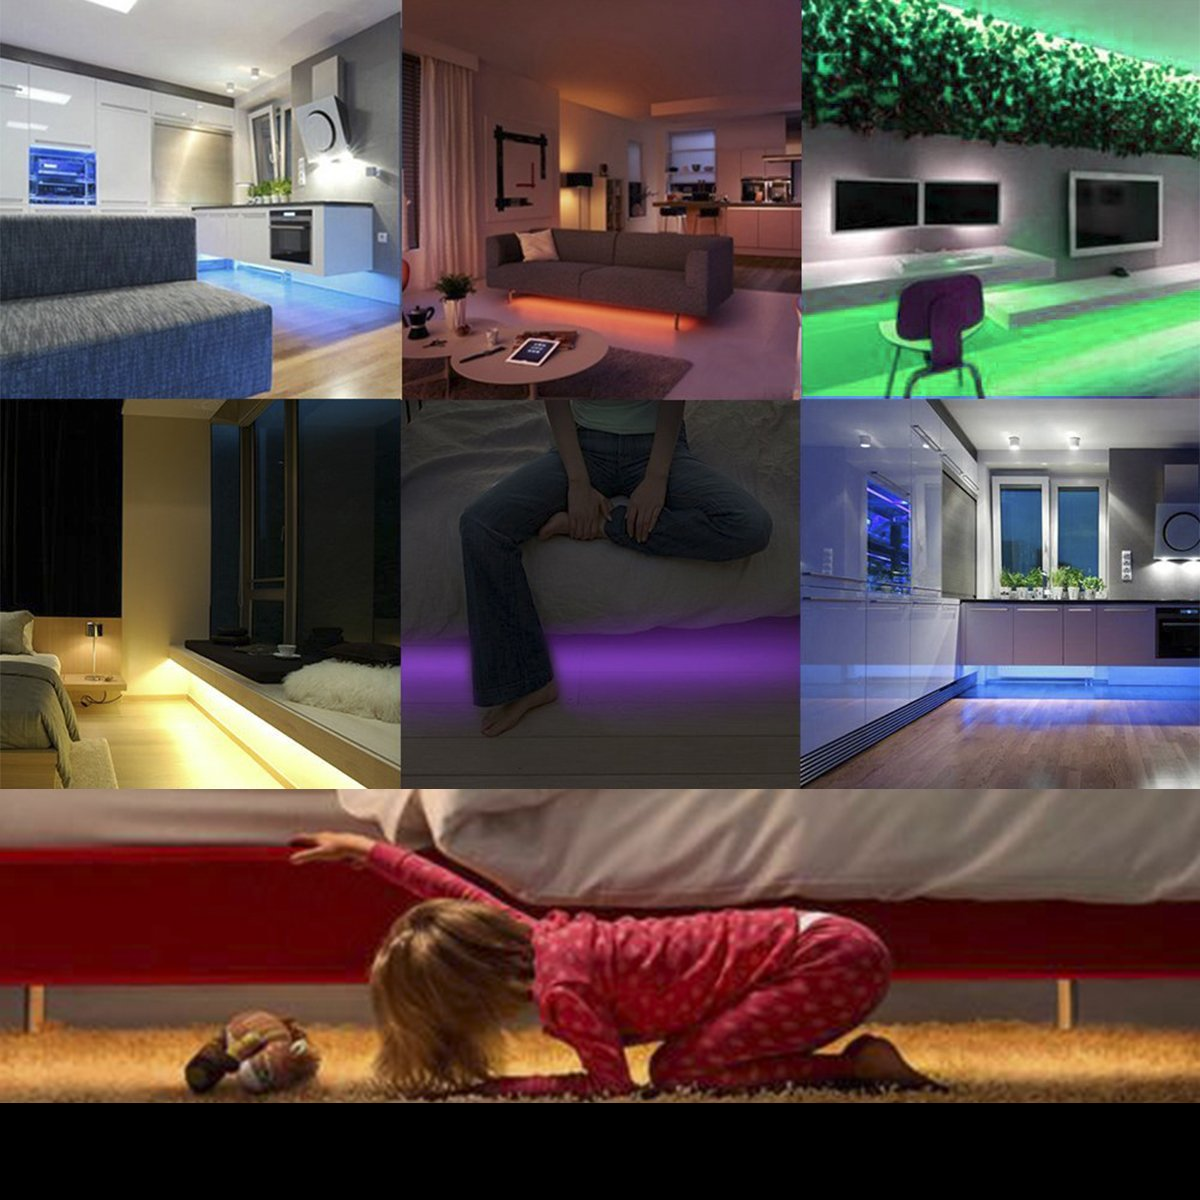 LEHOU Under Bed Light Motion Activated Illumination RGB Color Include Warm Color Automatic Staircase Lighting LED Strip Sensor Night Light Bathroom,Wardrobe,Kitchen - 1.5m/4.9ft x 2 by LEHOU (Image #6)